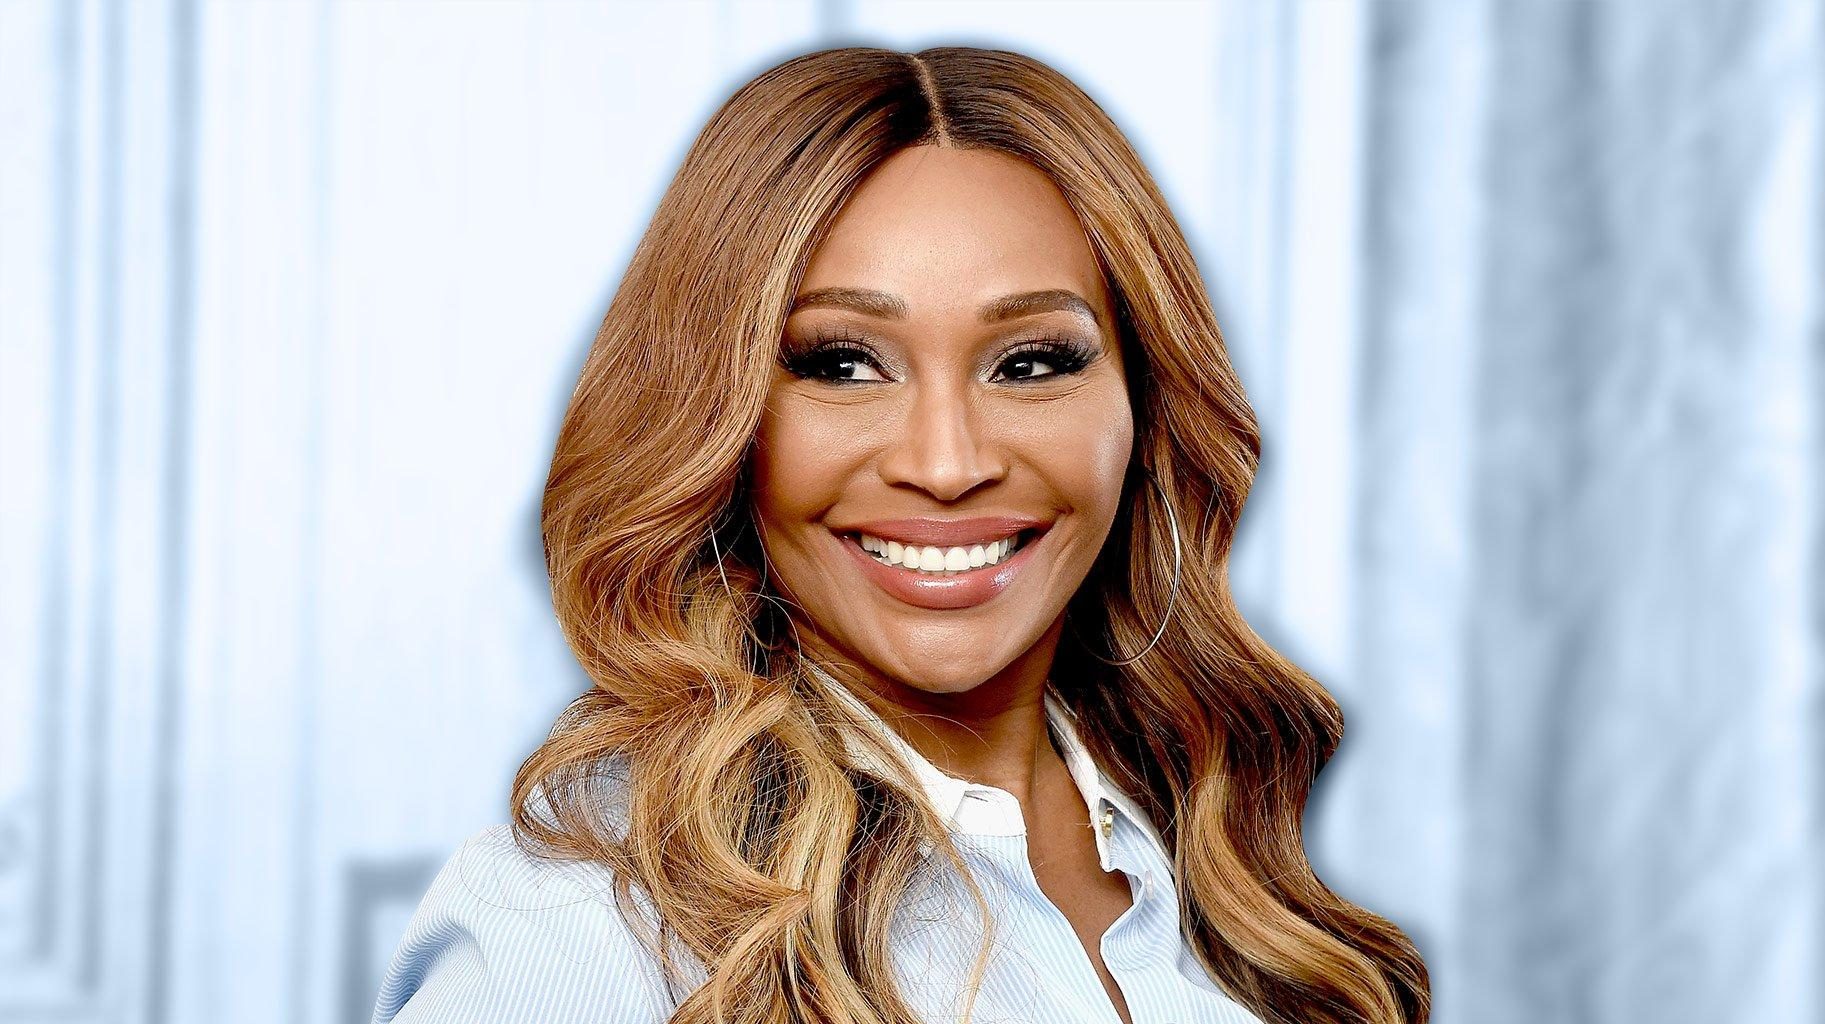 Cynthia Bailey Shares An Important Message For Fans About Responses